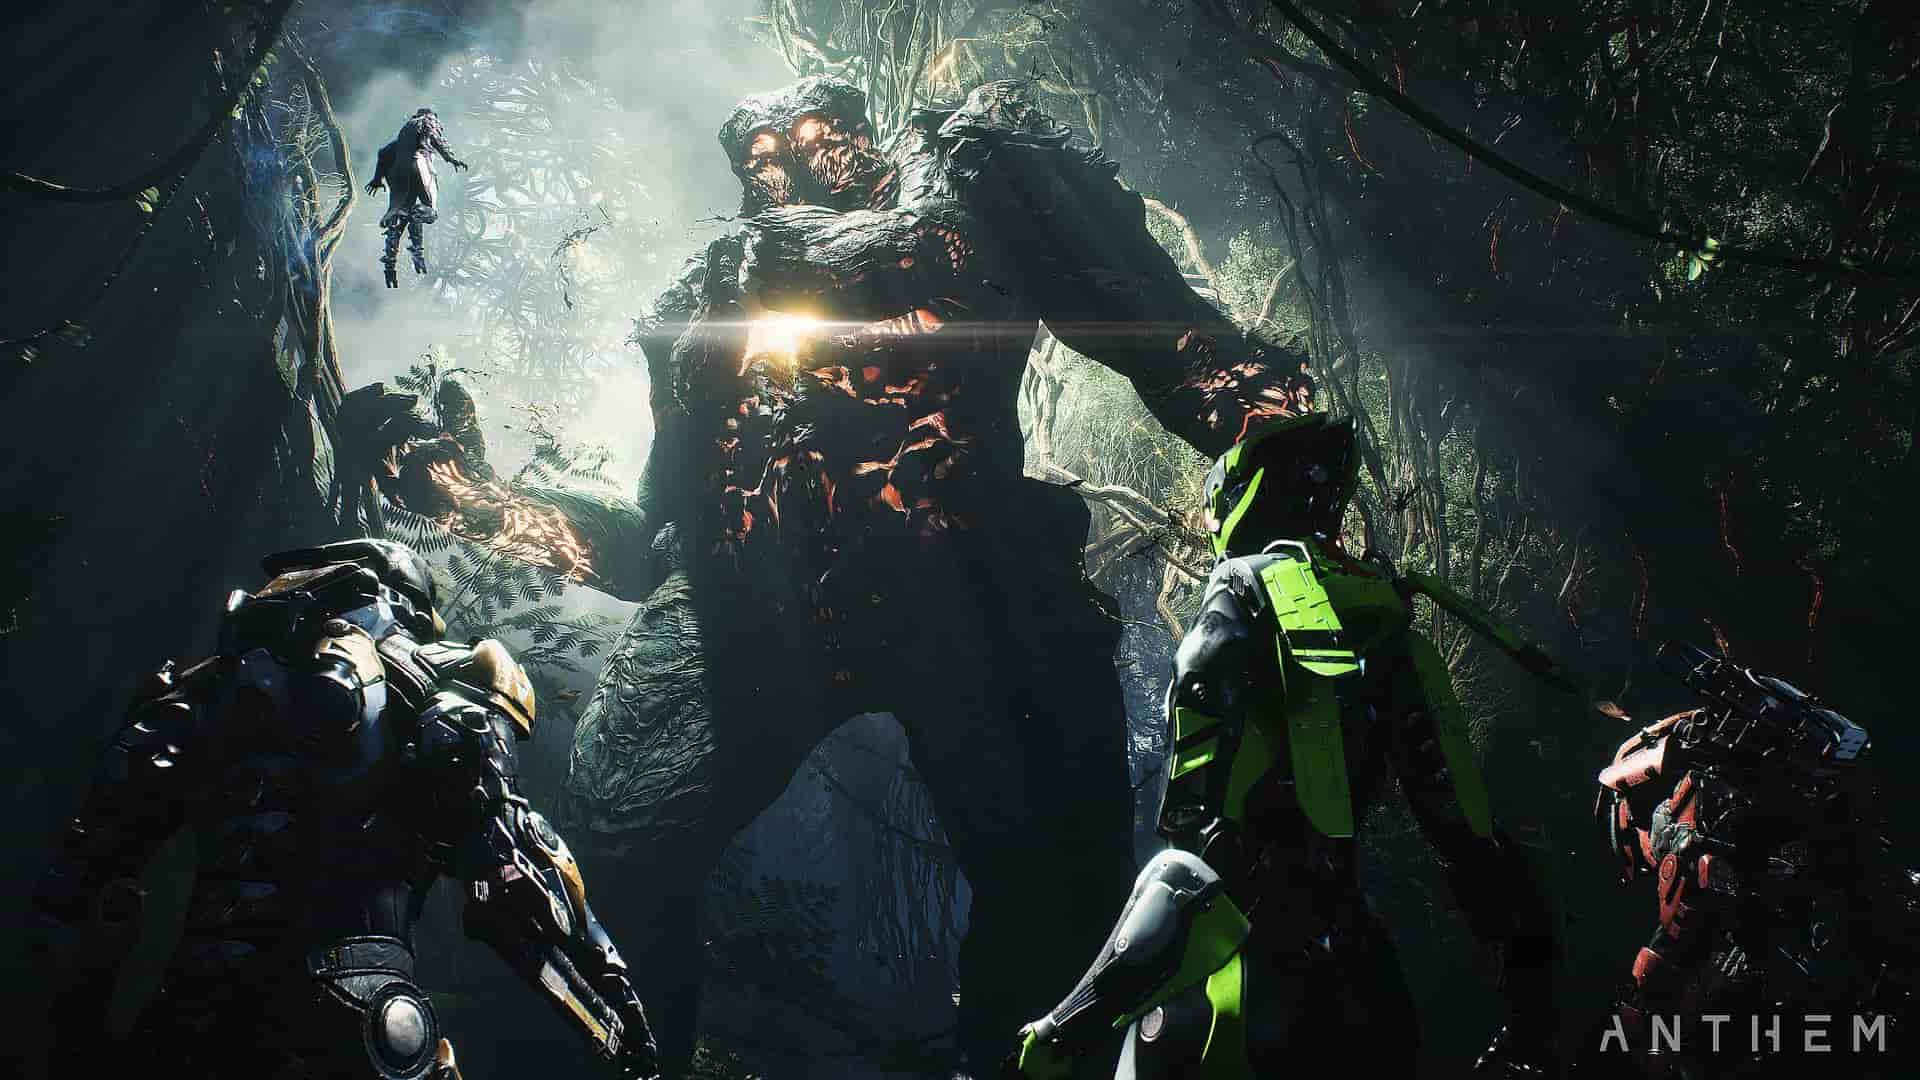 Anthem vip demo trailer